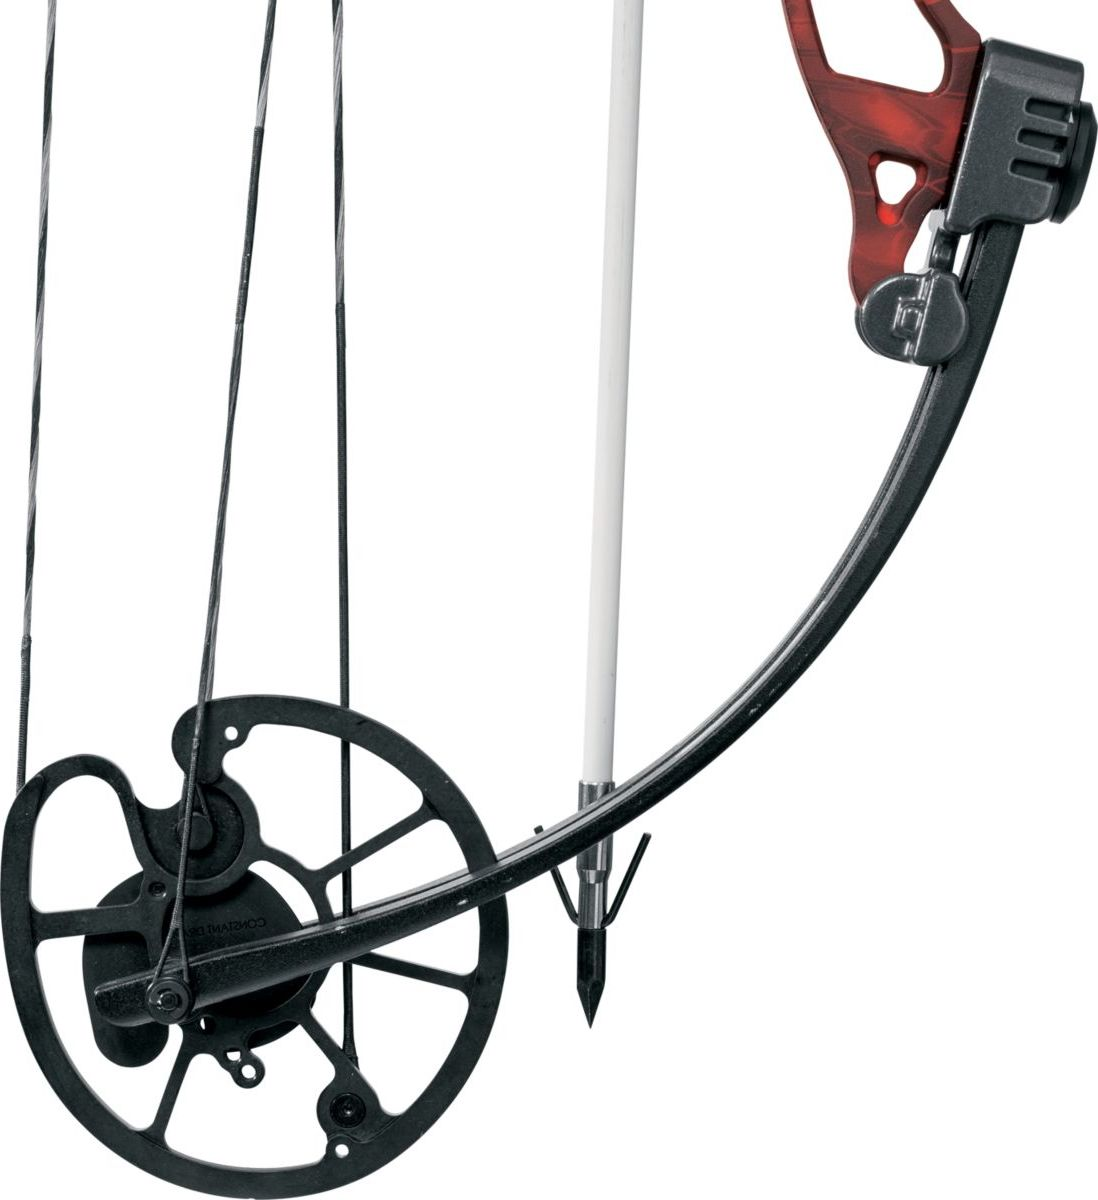 Cajun Bowfishing Sucker Punch RTF Bowfishing Package